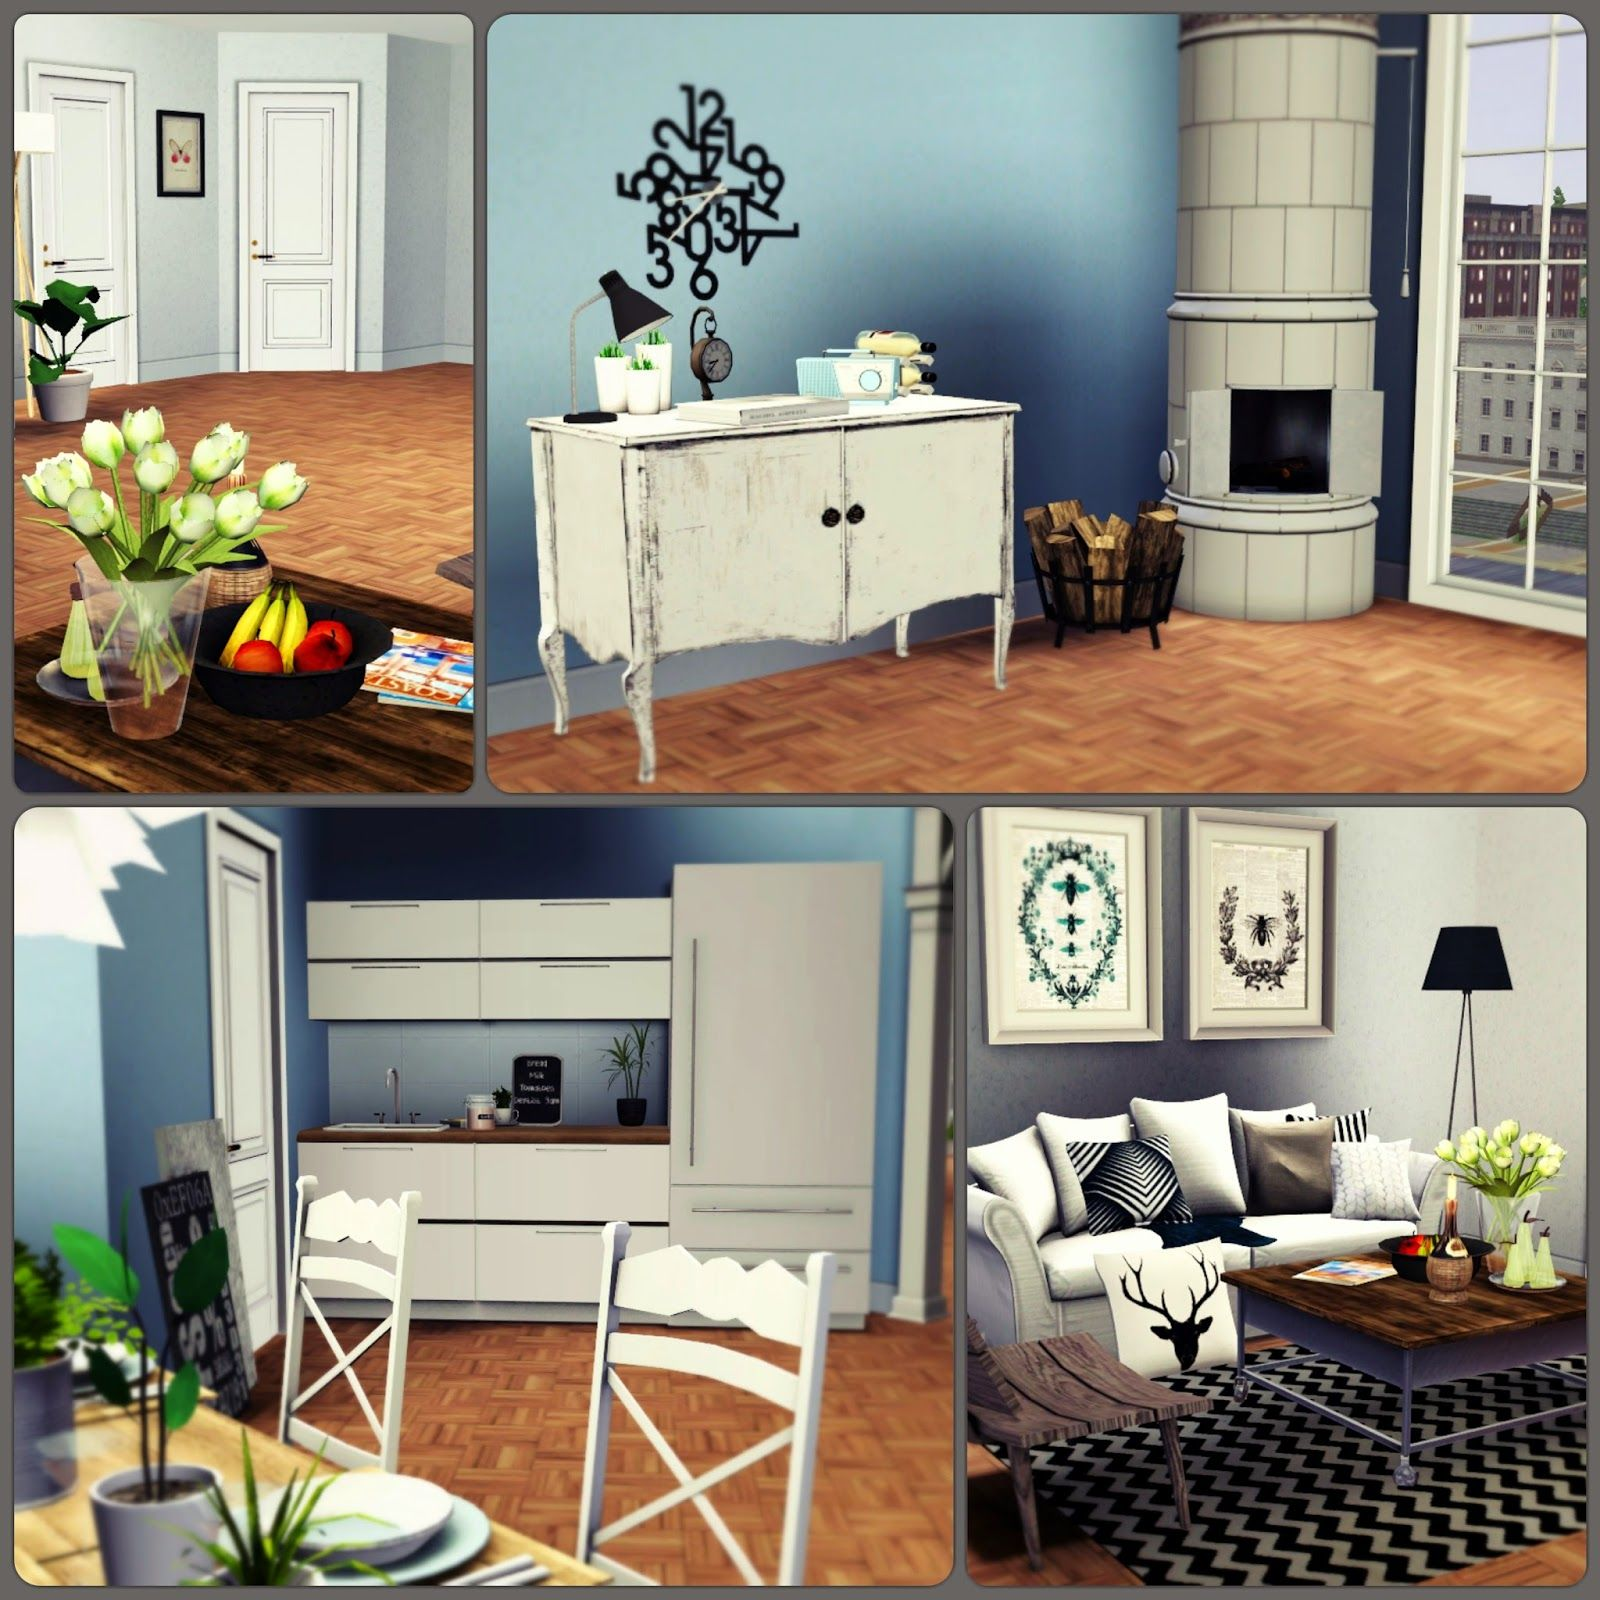 Apartment 13F By Simberry / Kitchen / Sims 3 / Download